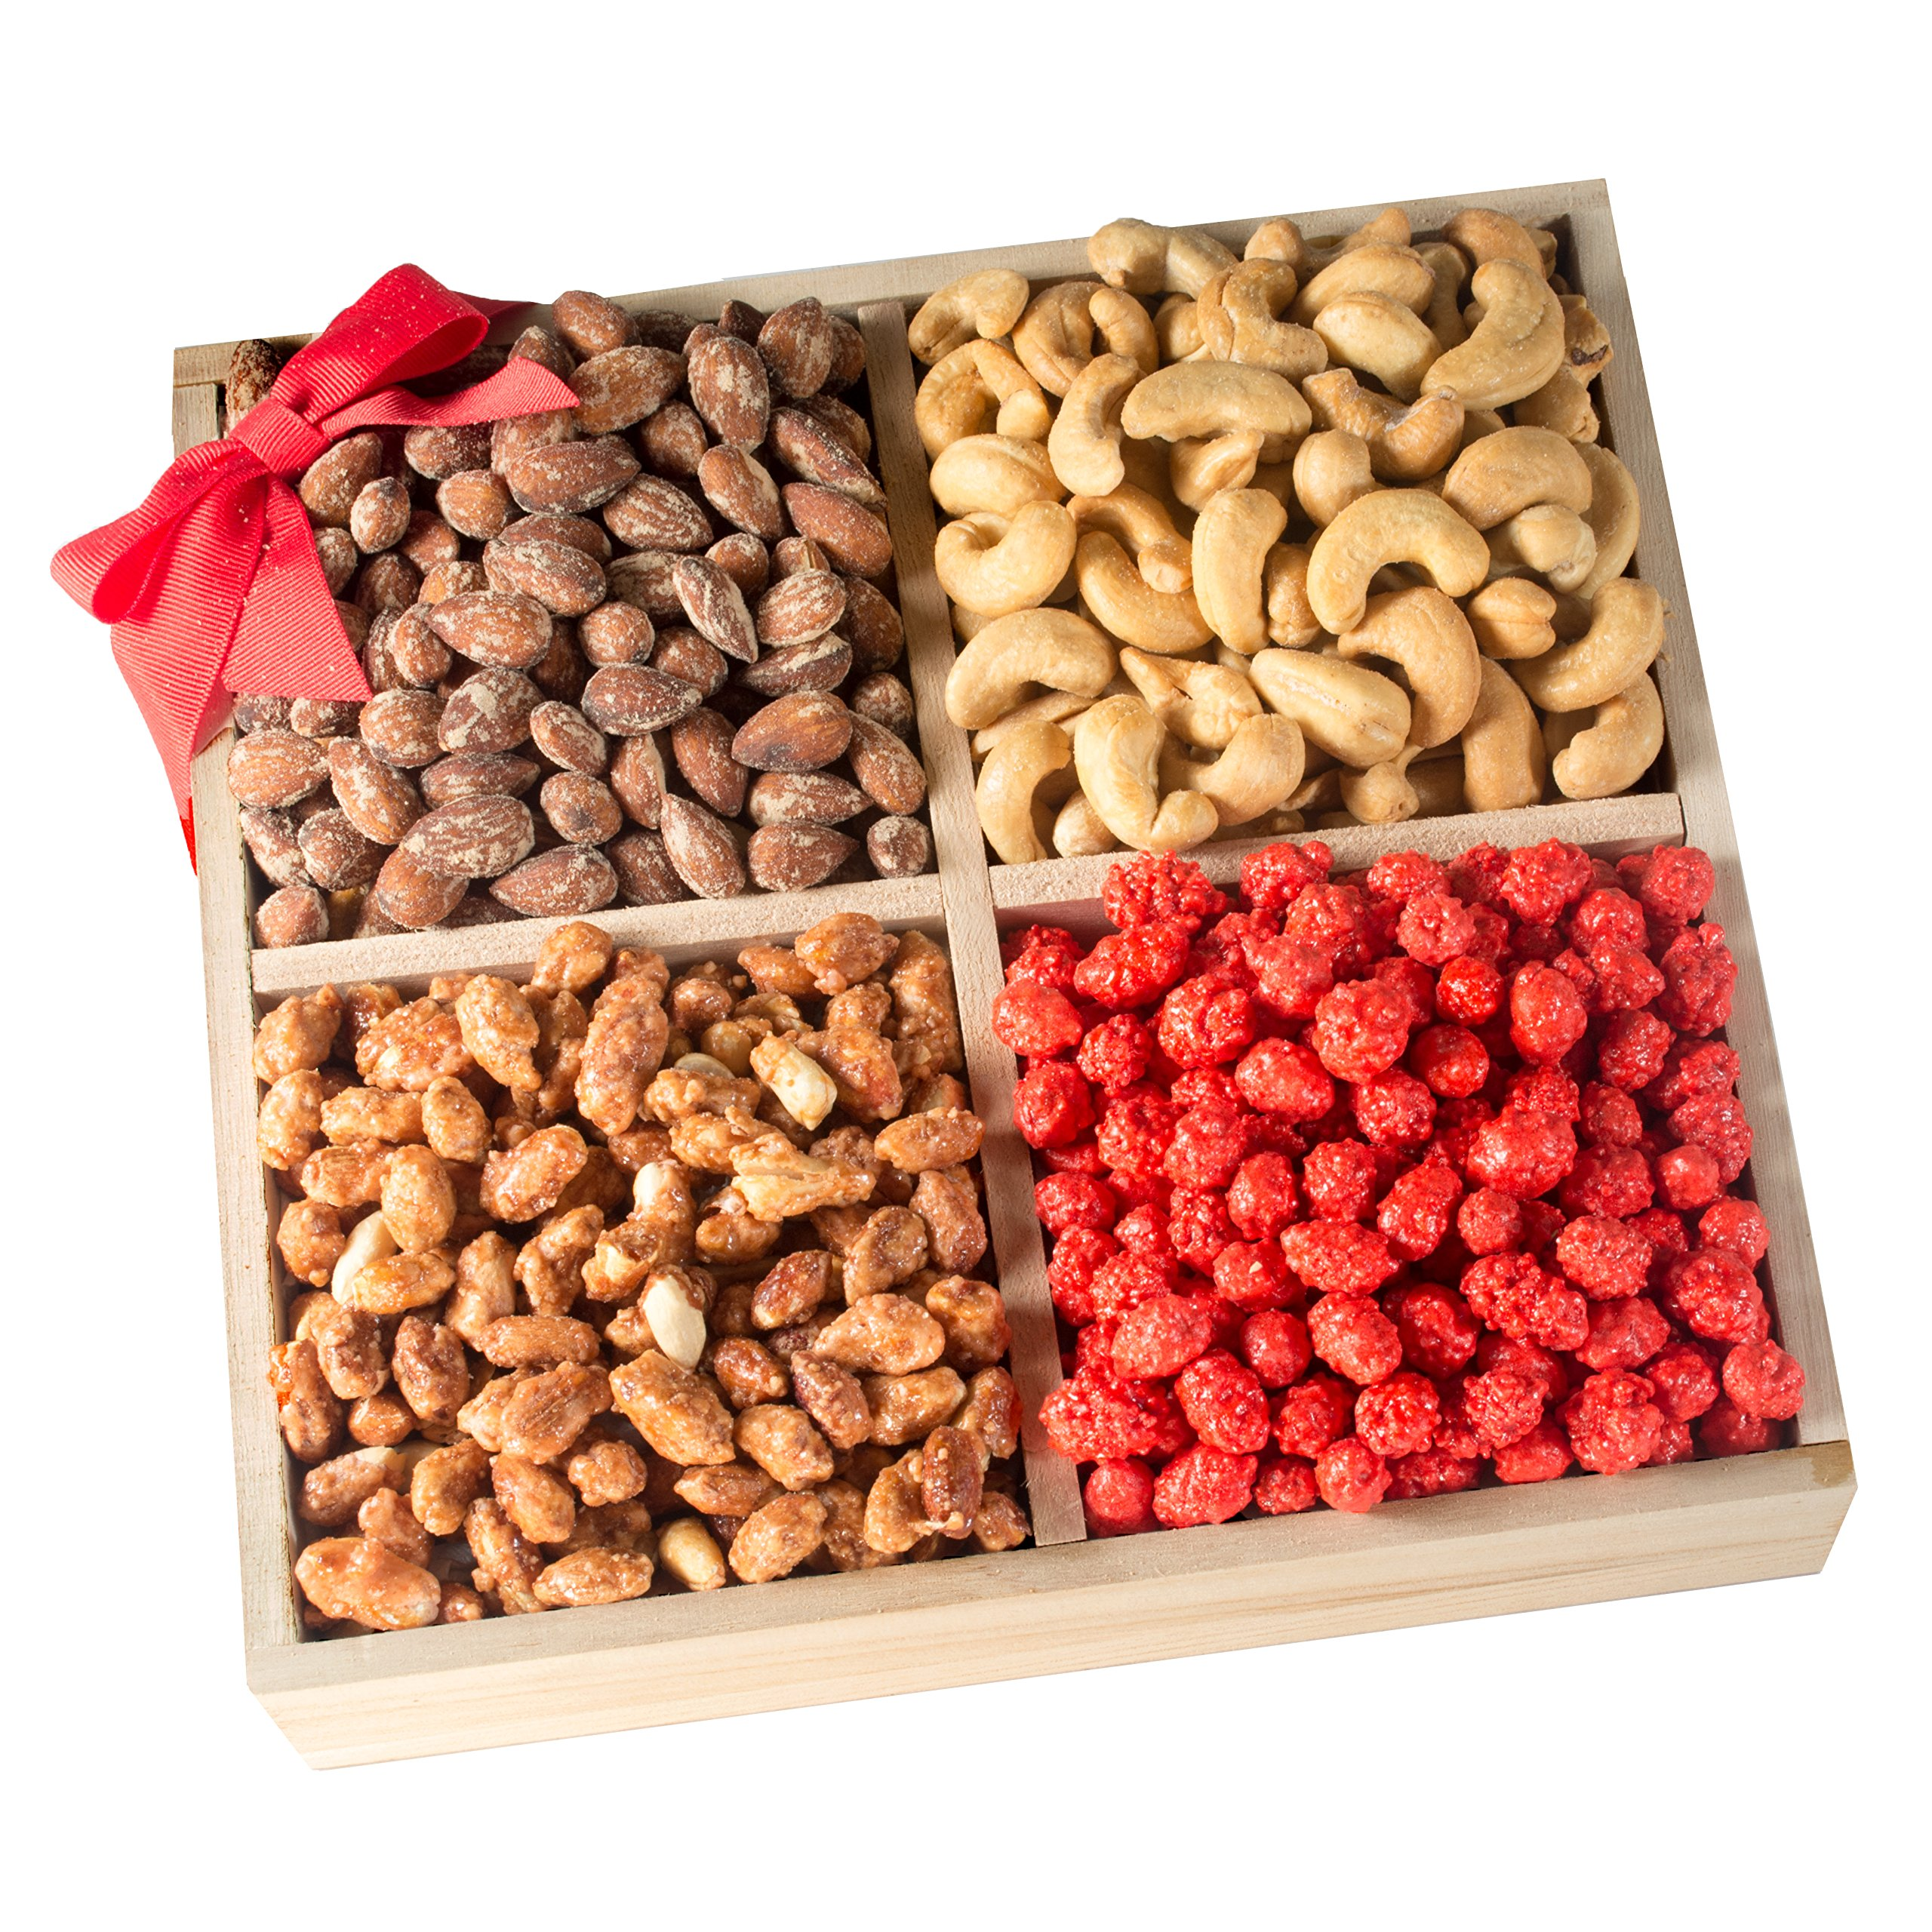 CDM product Broadway Basketeers Gift Basket 4 Section Gourmet Assorted Fancy Nuts Tray - Makes For A Perfect Gifts big image